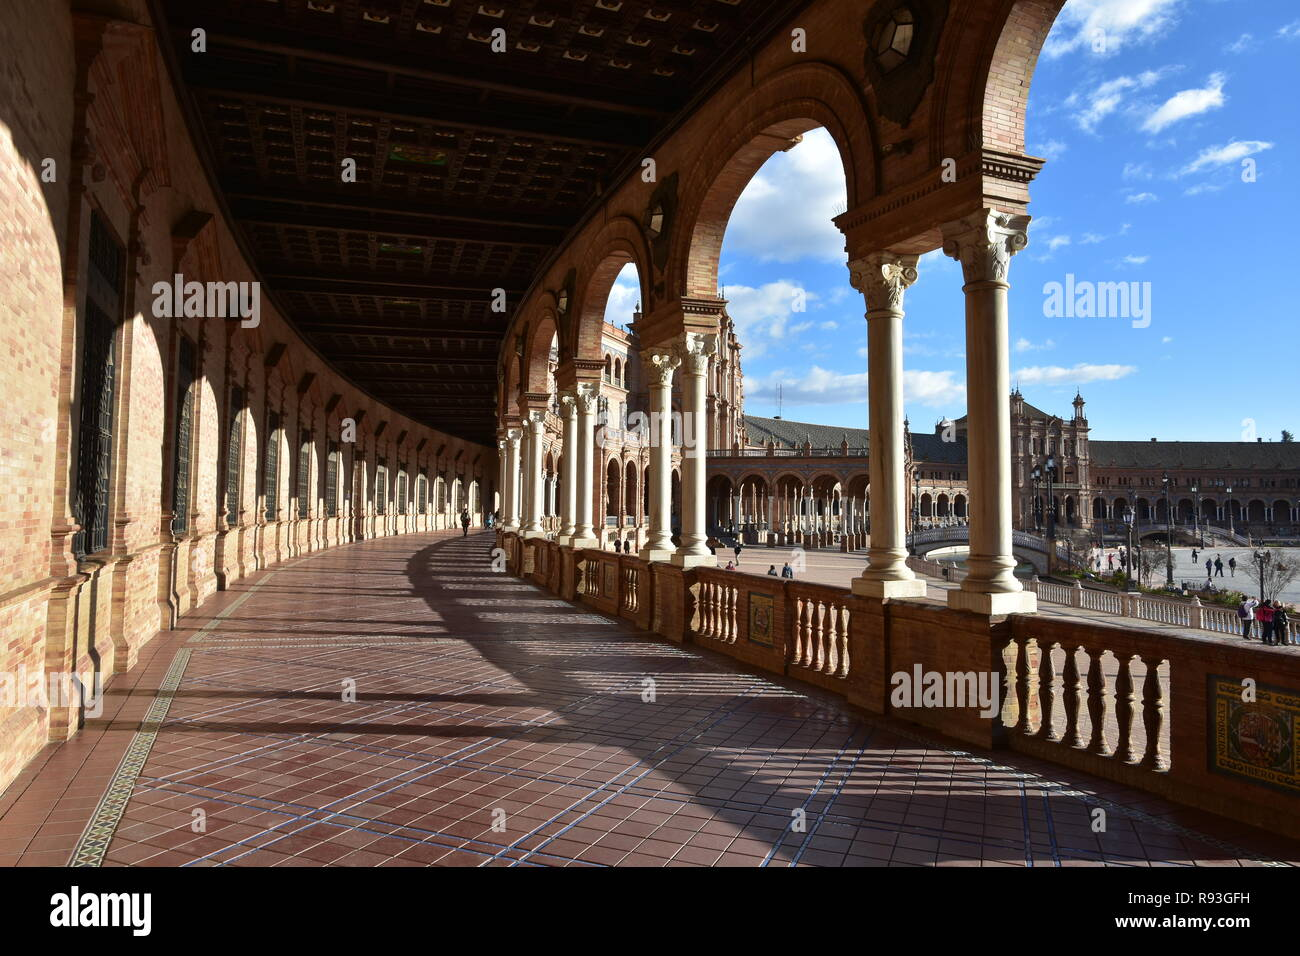 The beautiful Spanish Steps in Seville, with its amazing architecture Stock Photo